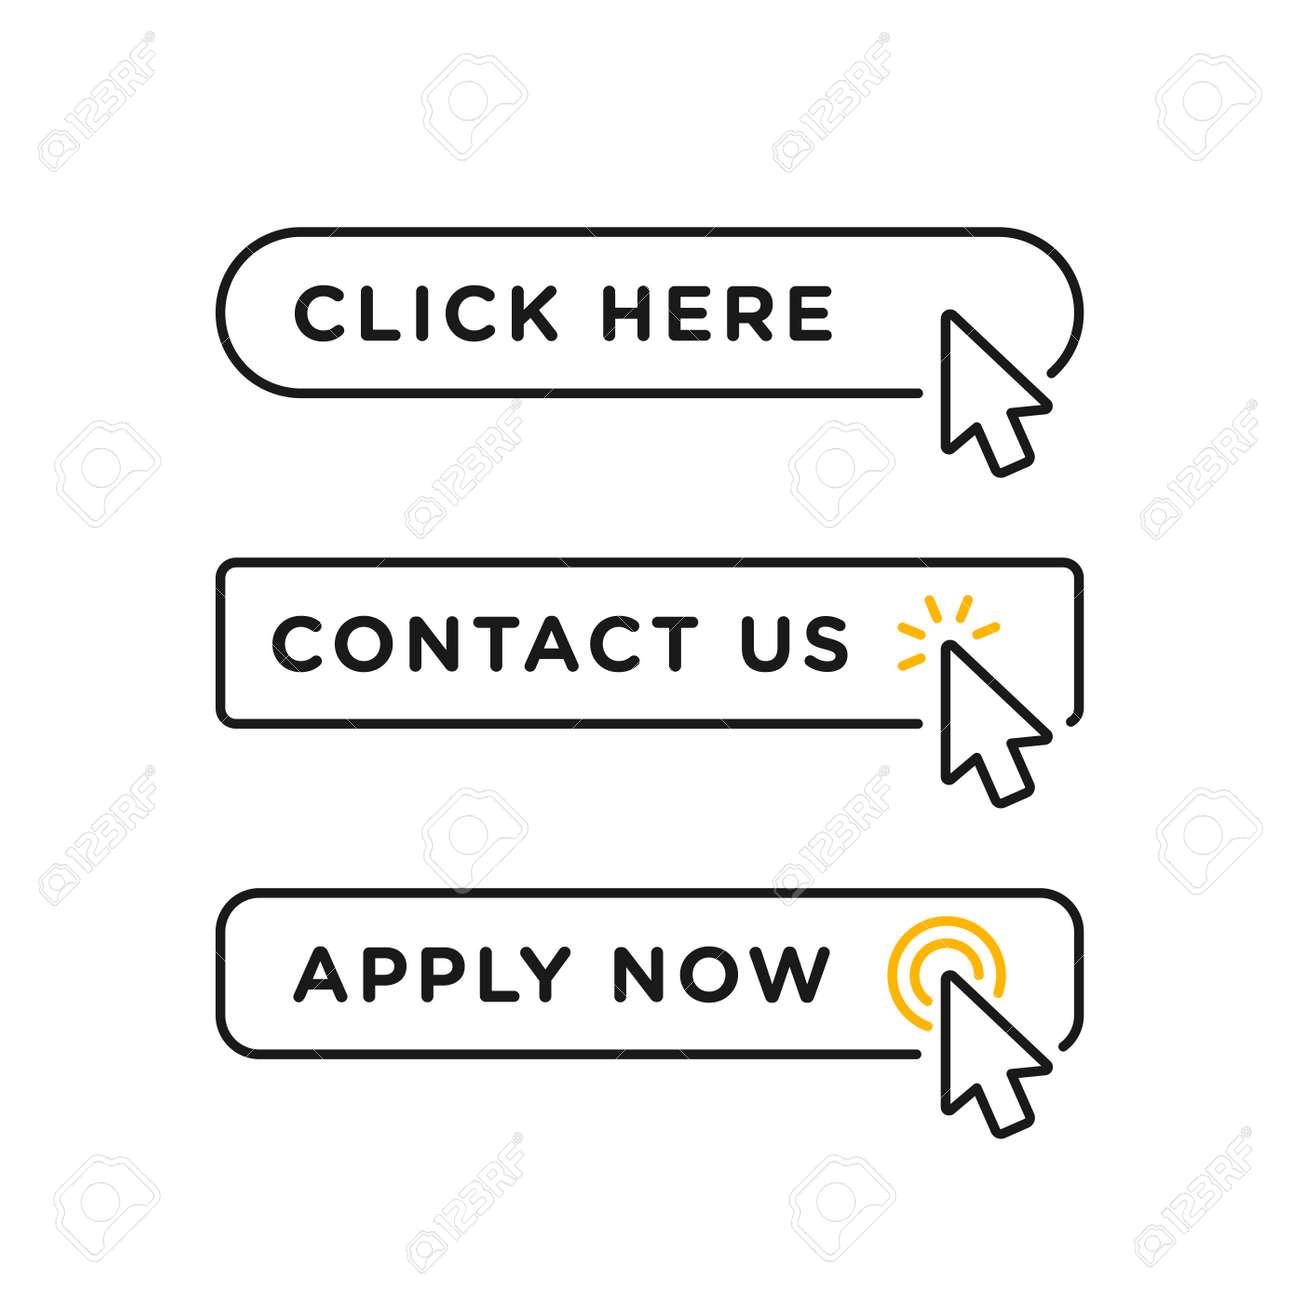 Click here, contact us and apply now blank button in line style design with various arrow pointer cursor - 162381822